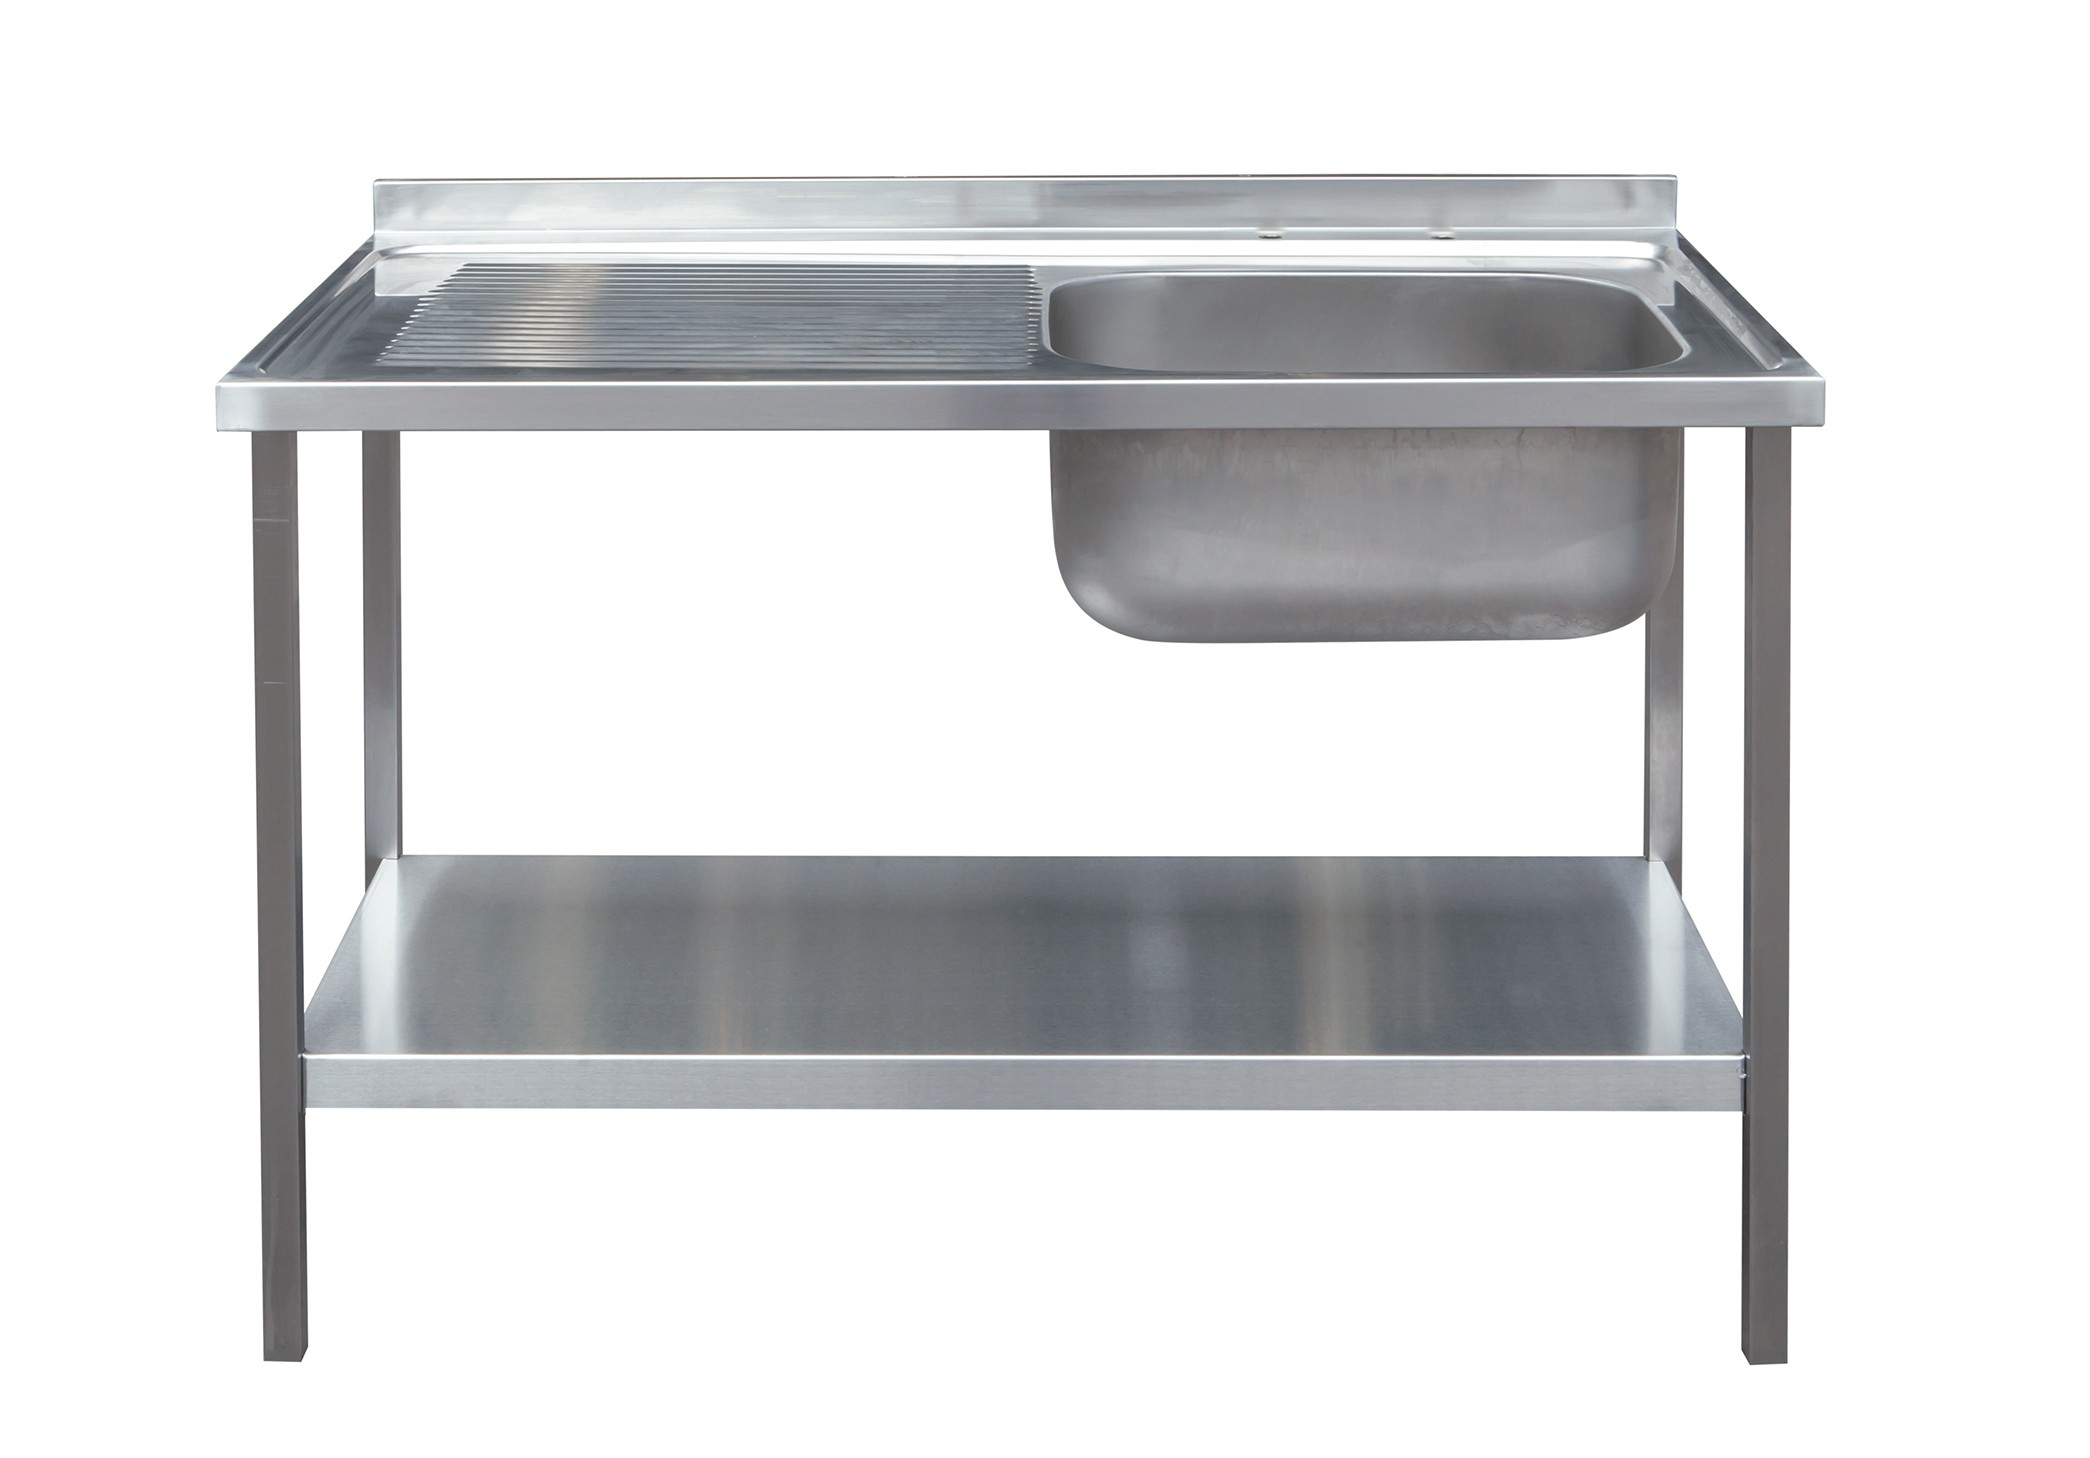 Flat Pack Stainless Steel Sink Unit With Undershelf Supplied With